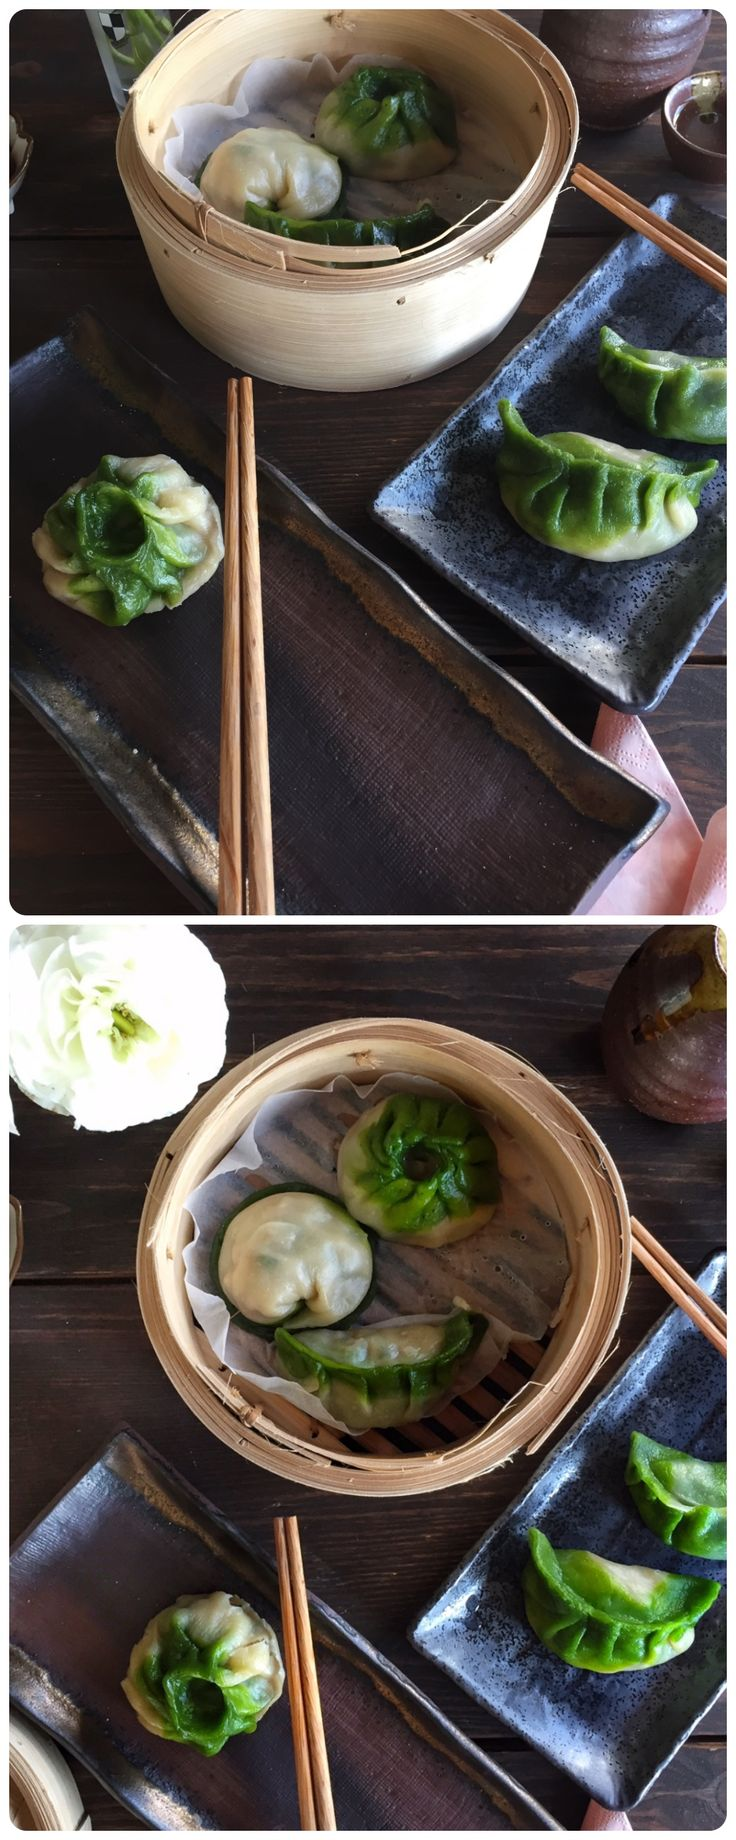 Chard & Spinach Dumplings